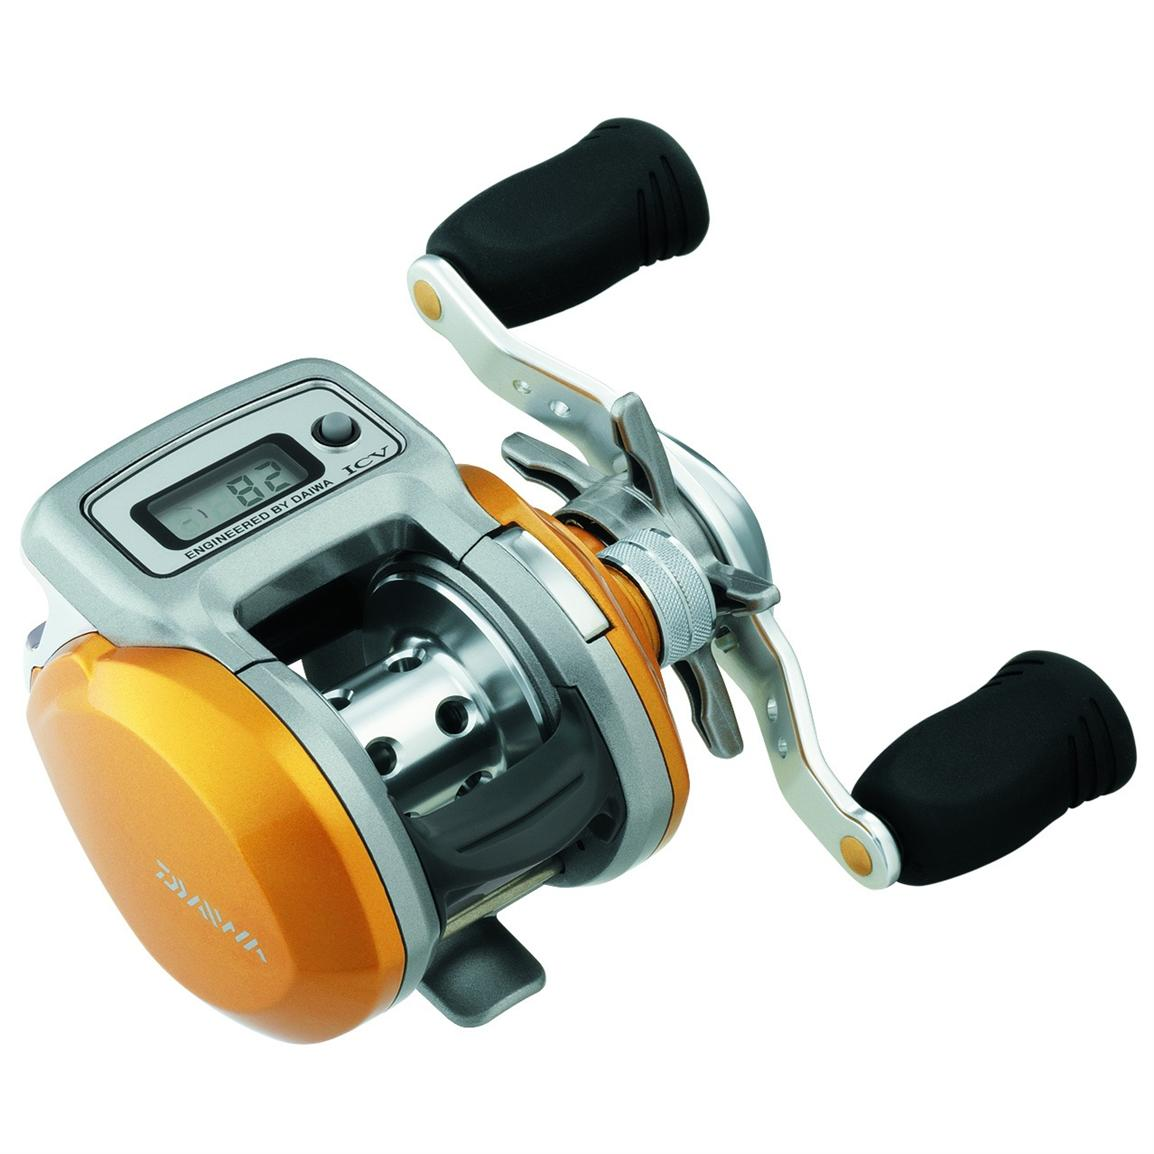 Daiwa U00ae Compact Digital Icv Line Counter Reel